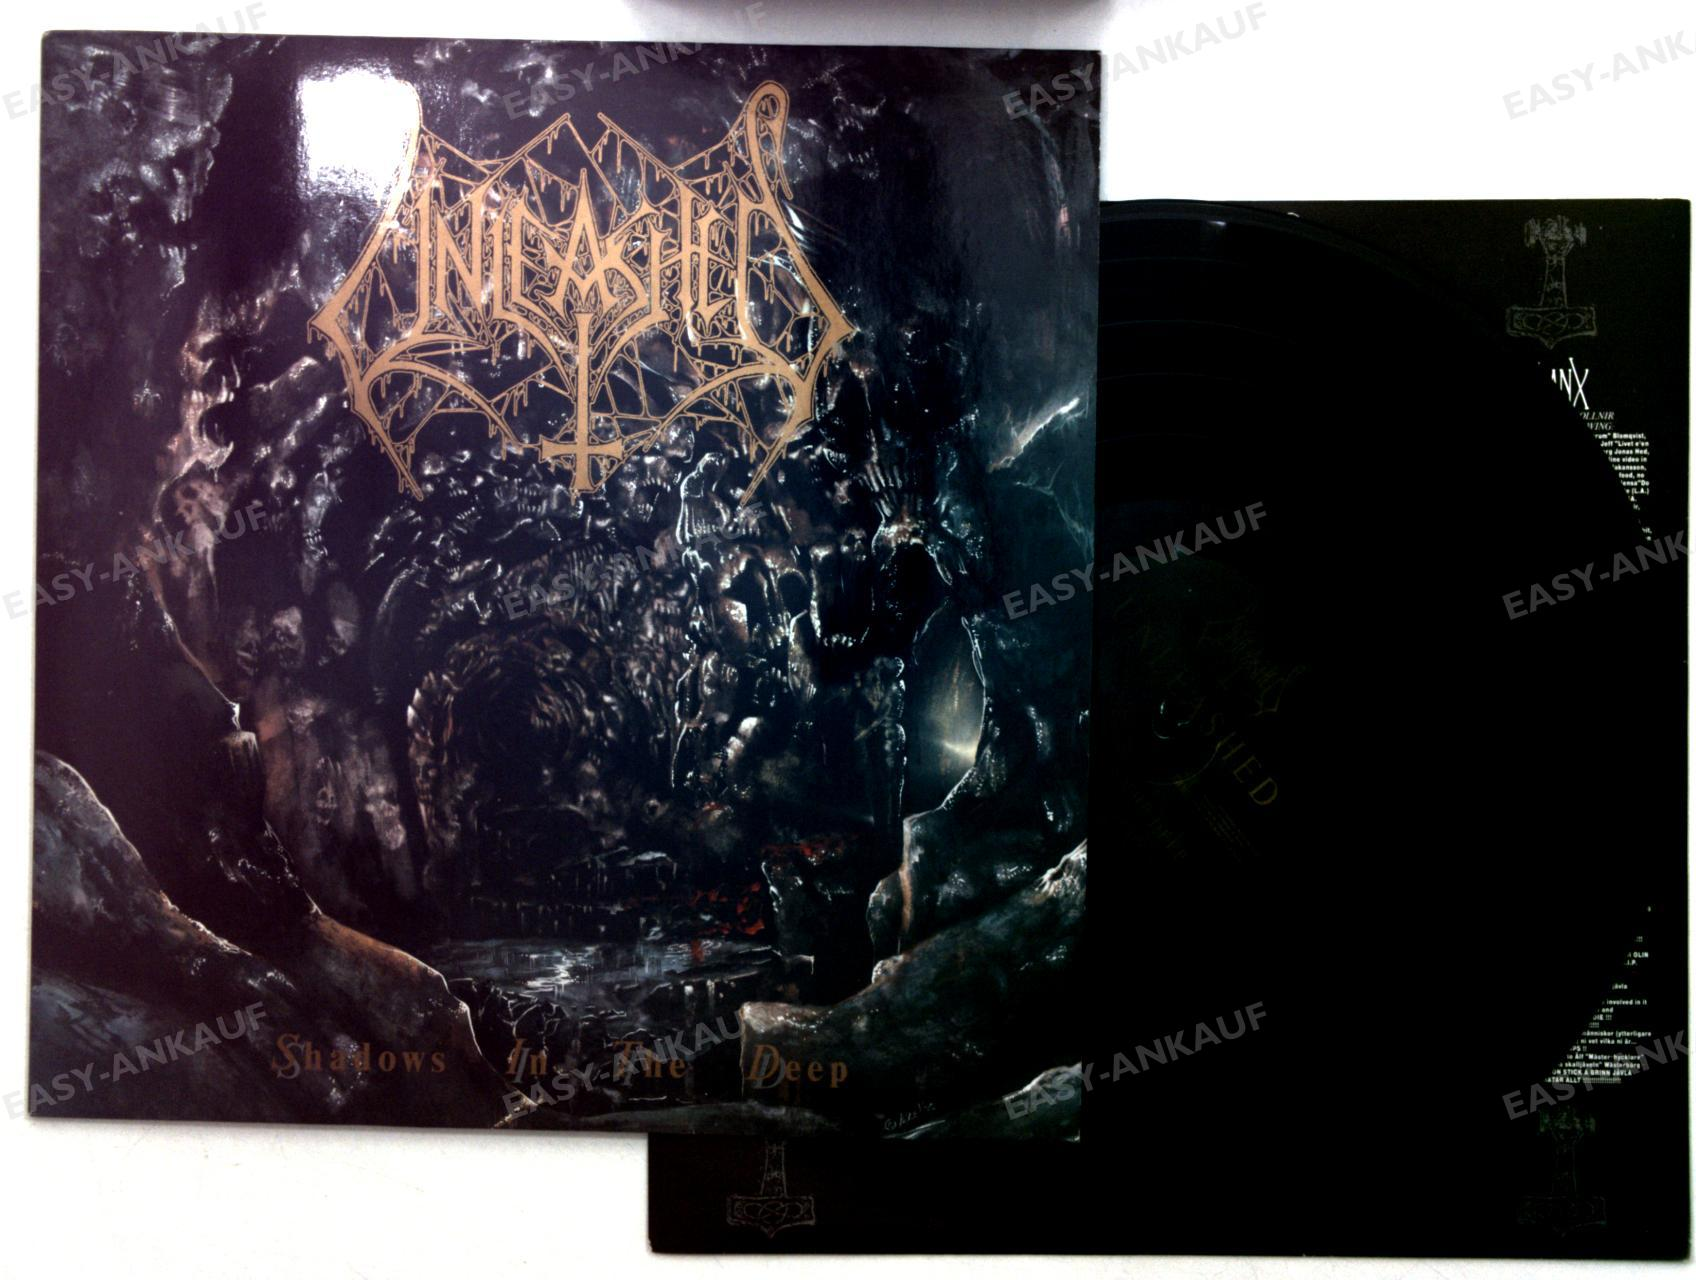 Unleashed-Shadows-In-The-Deep-Europe-LP-1992-Innerbag-039